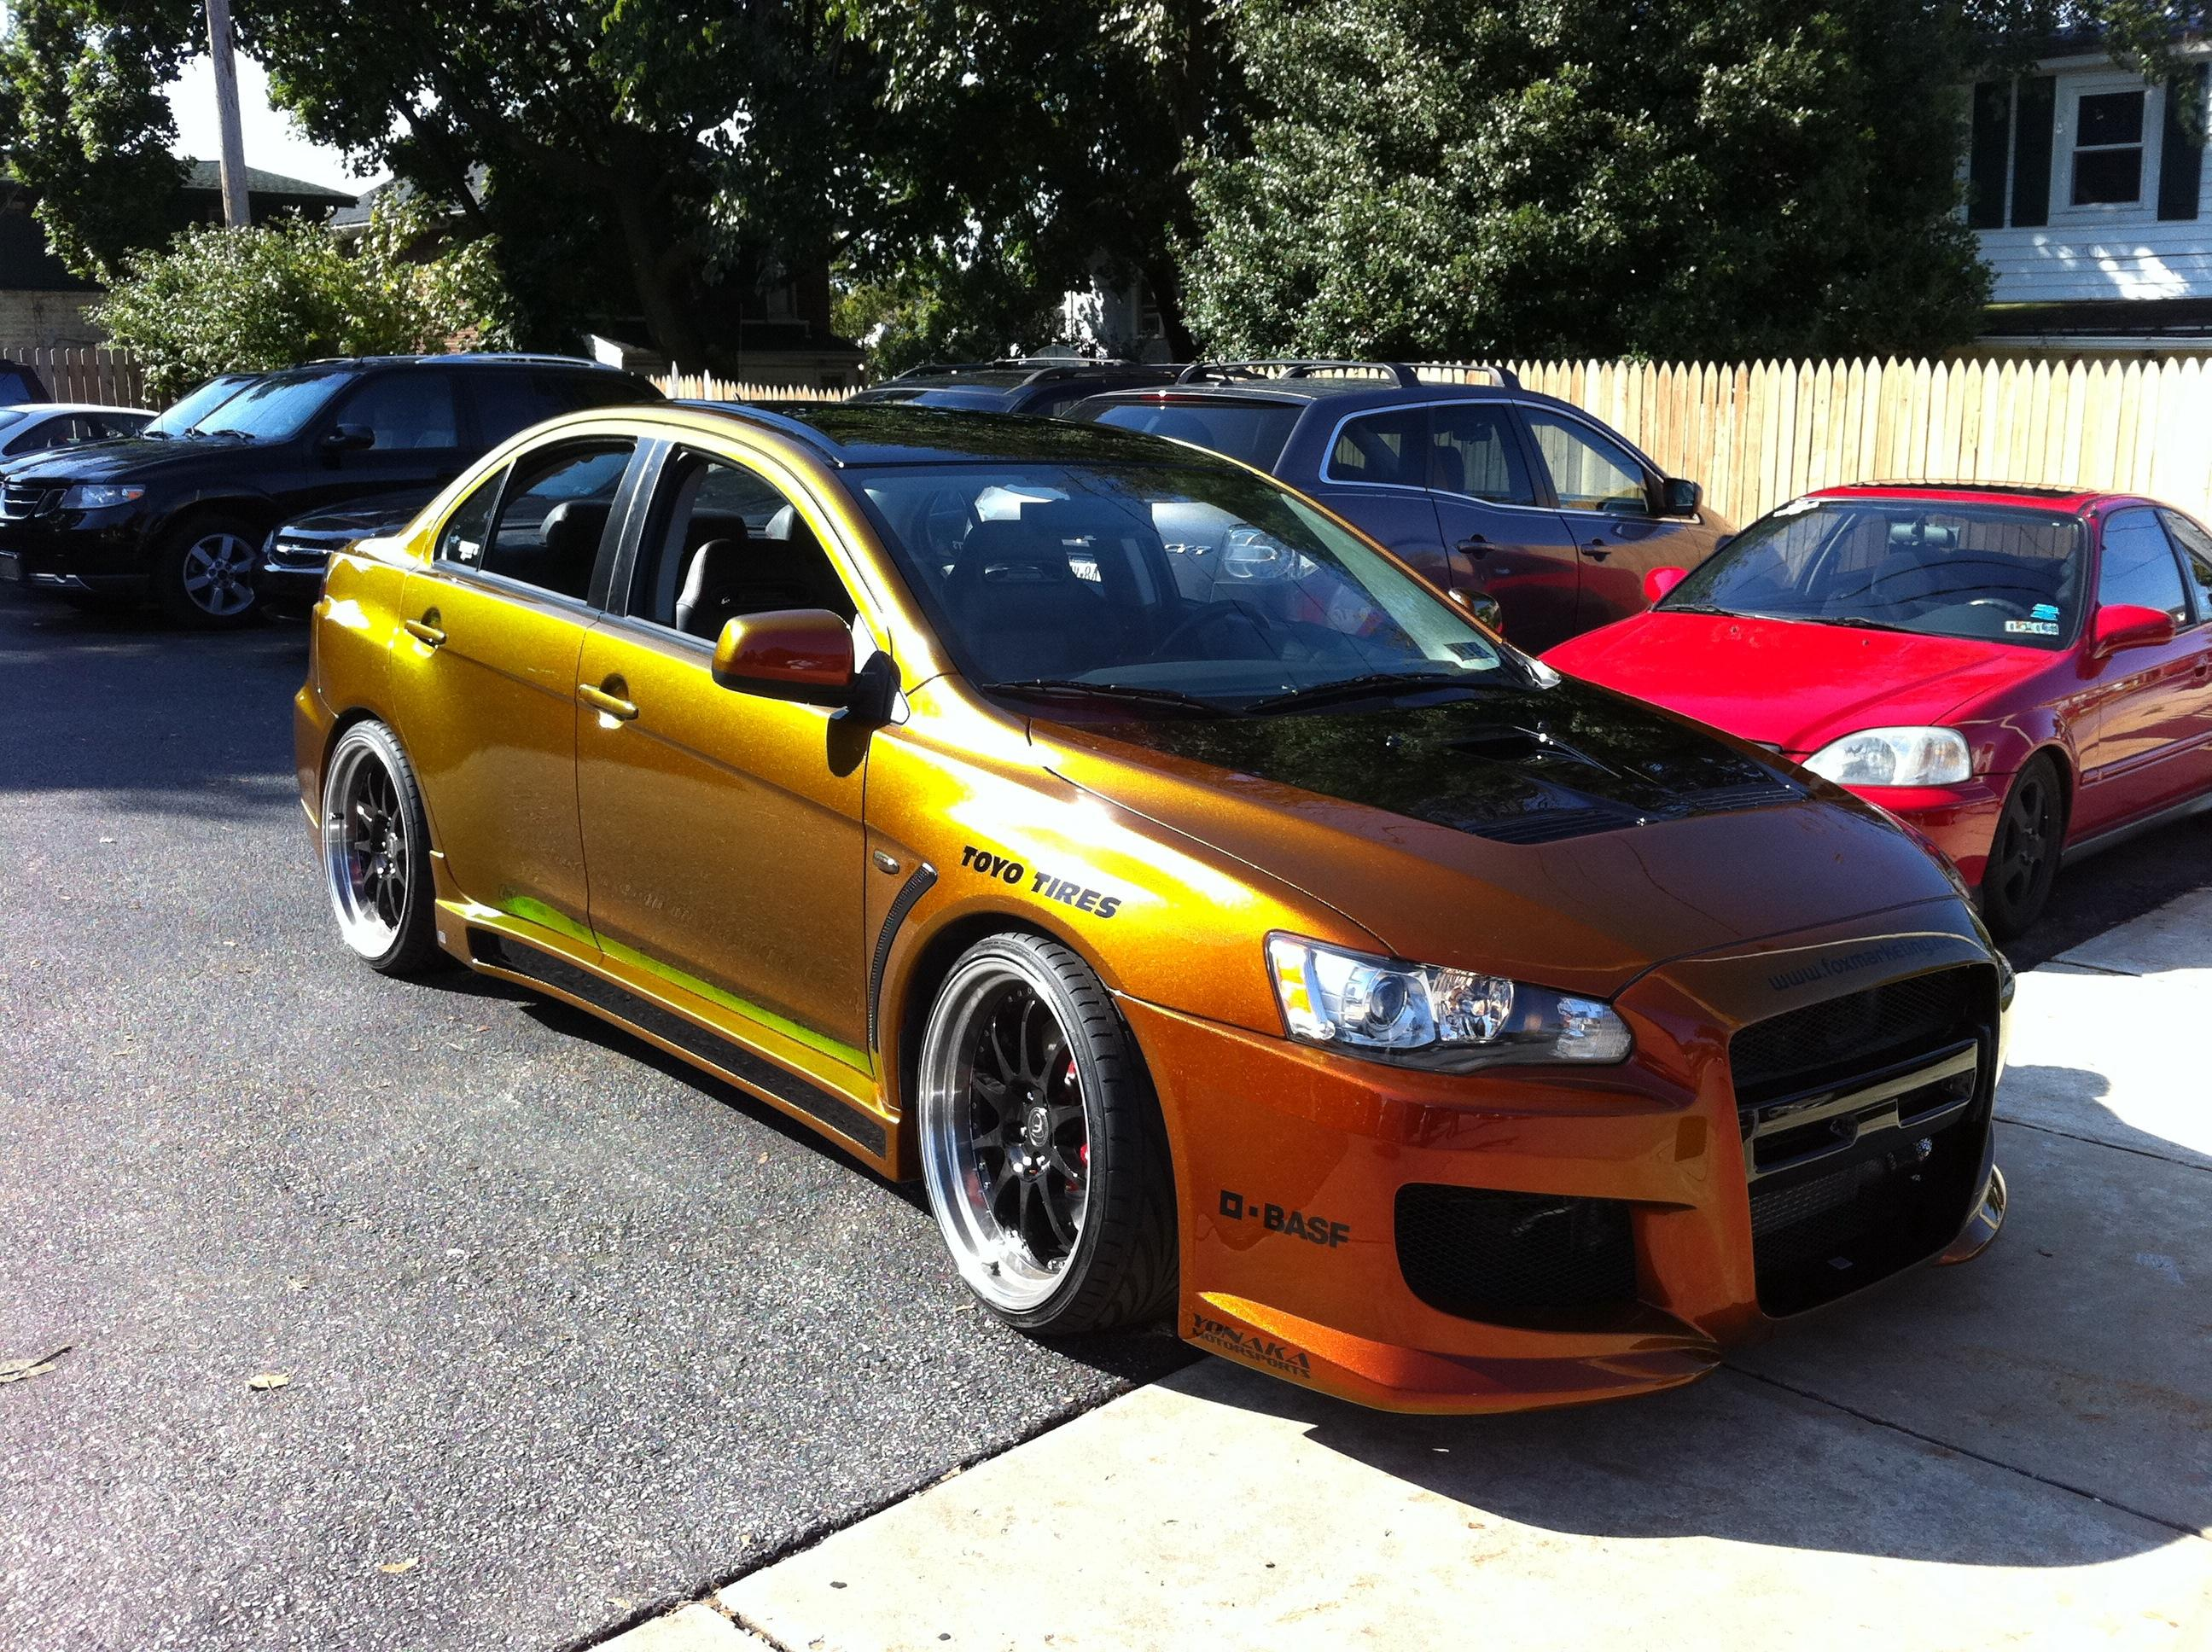 FoxMarketing2's 2008 Mitsubishi Lancer